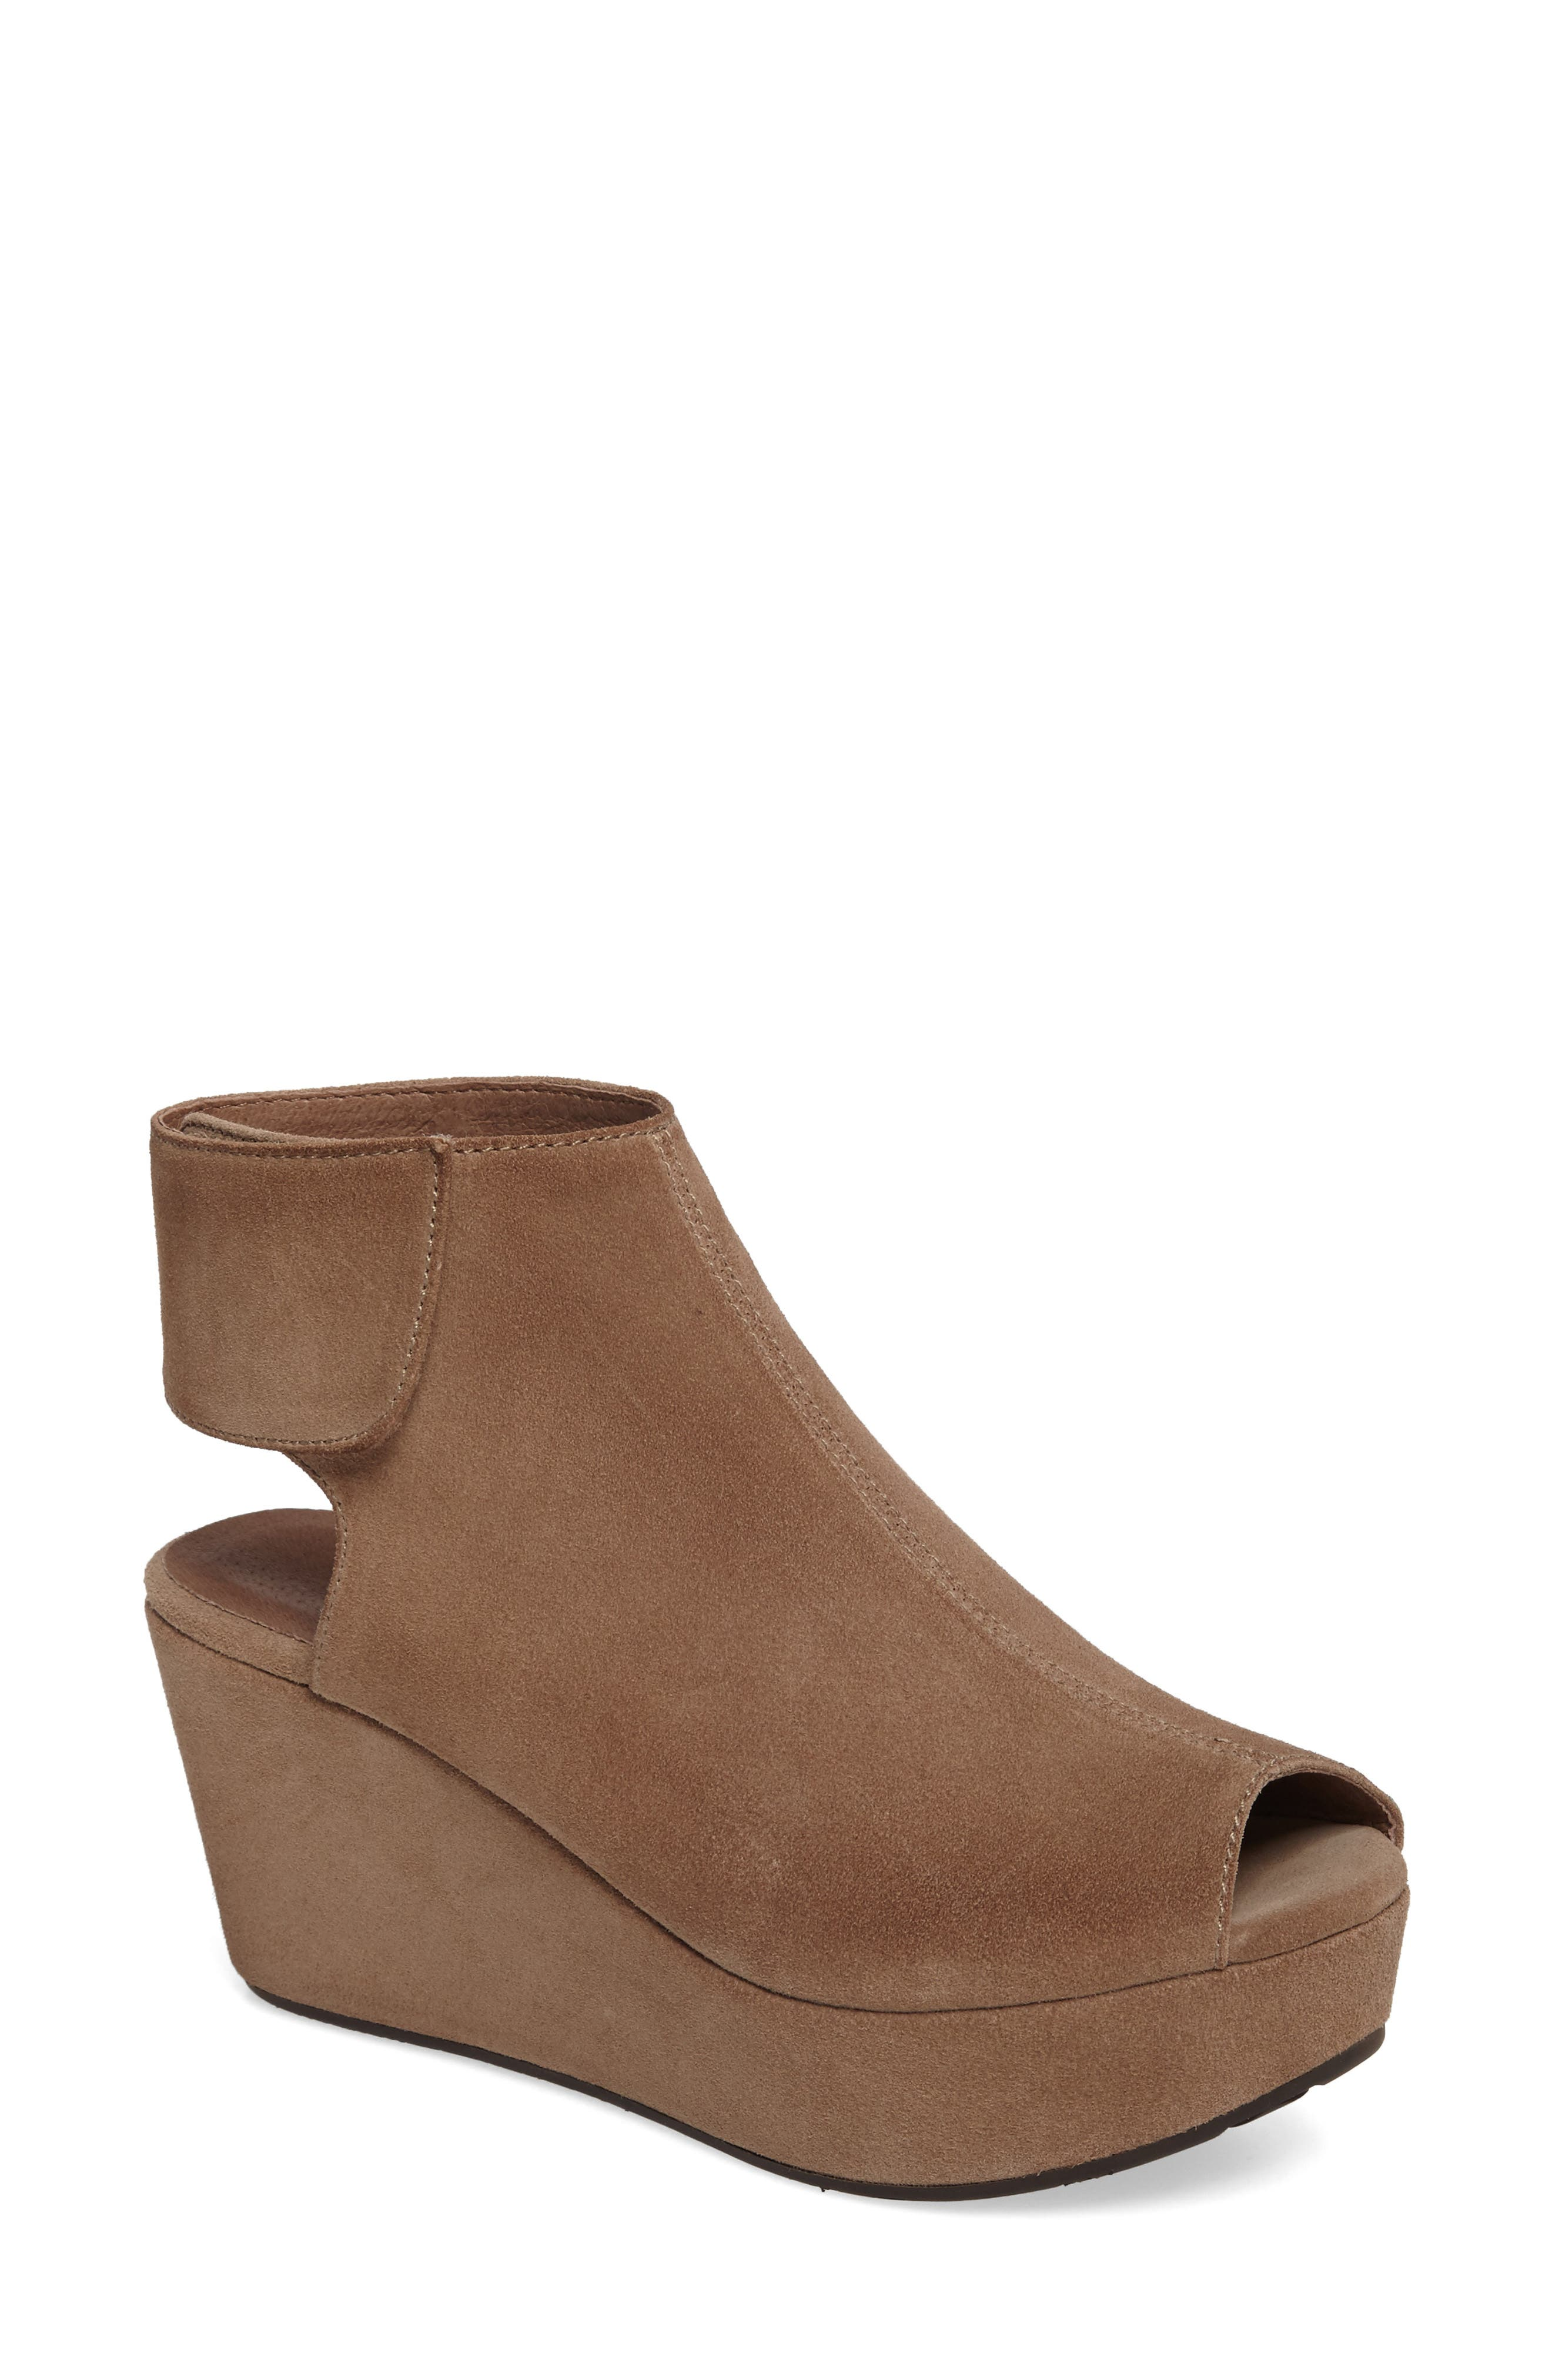 Cutout Wedge Sandal,                         Main,                         color, Taupe Suede